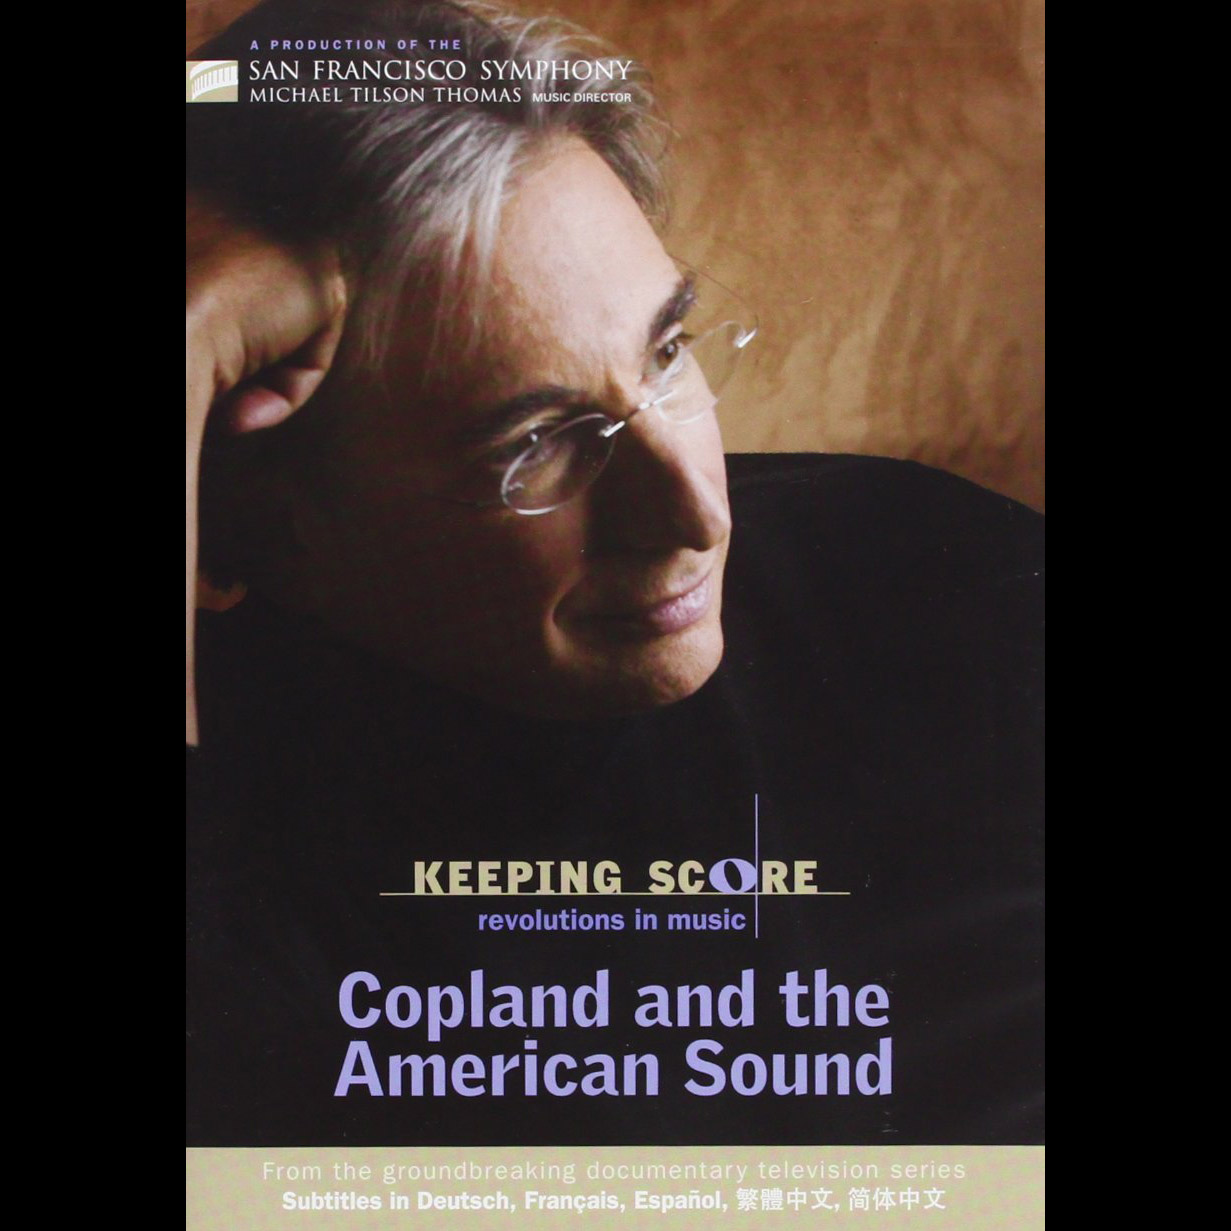 Keeping Score: Copland and the American Sound (DVD)